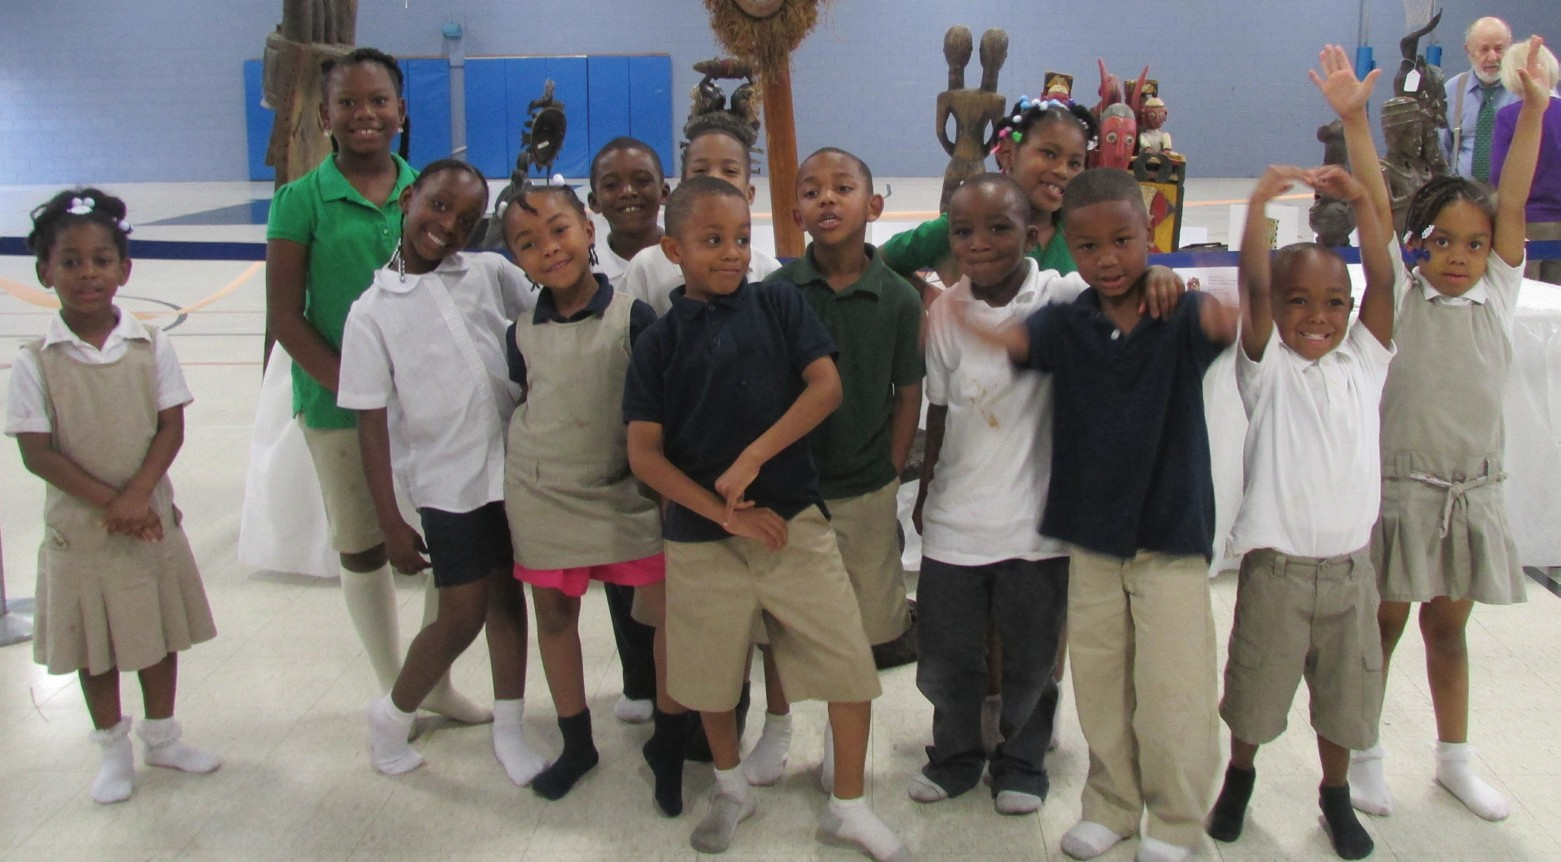 Students of May Street YMCA view the Kole Exhibit during Open House.